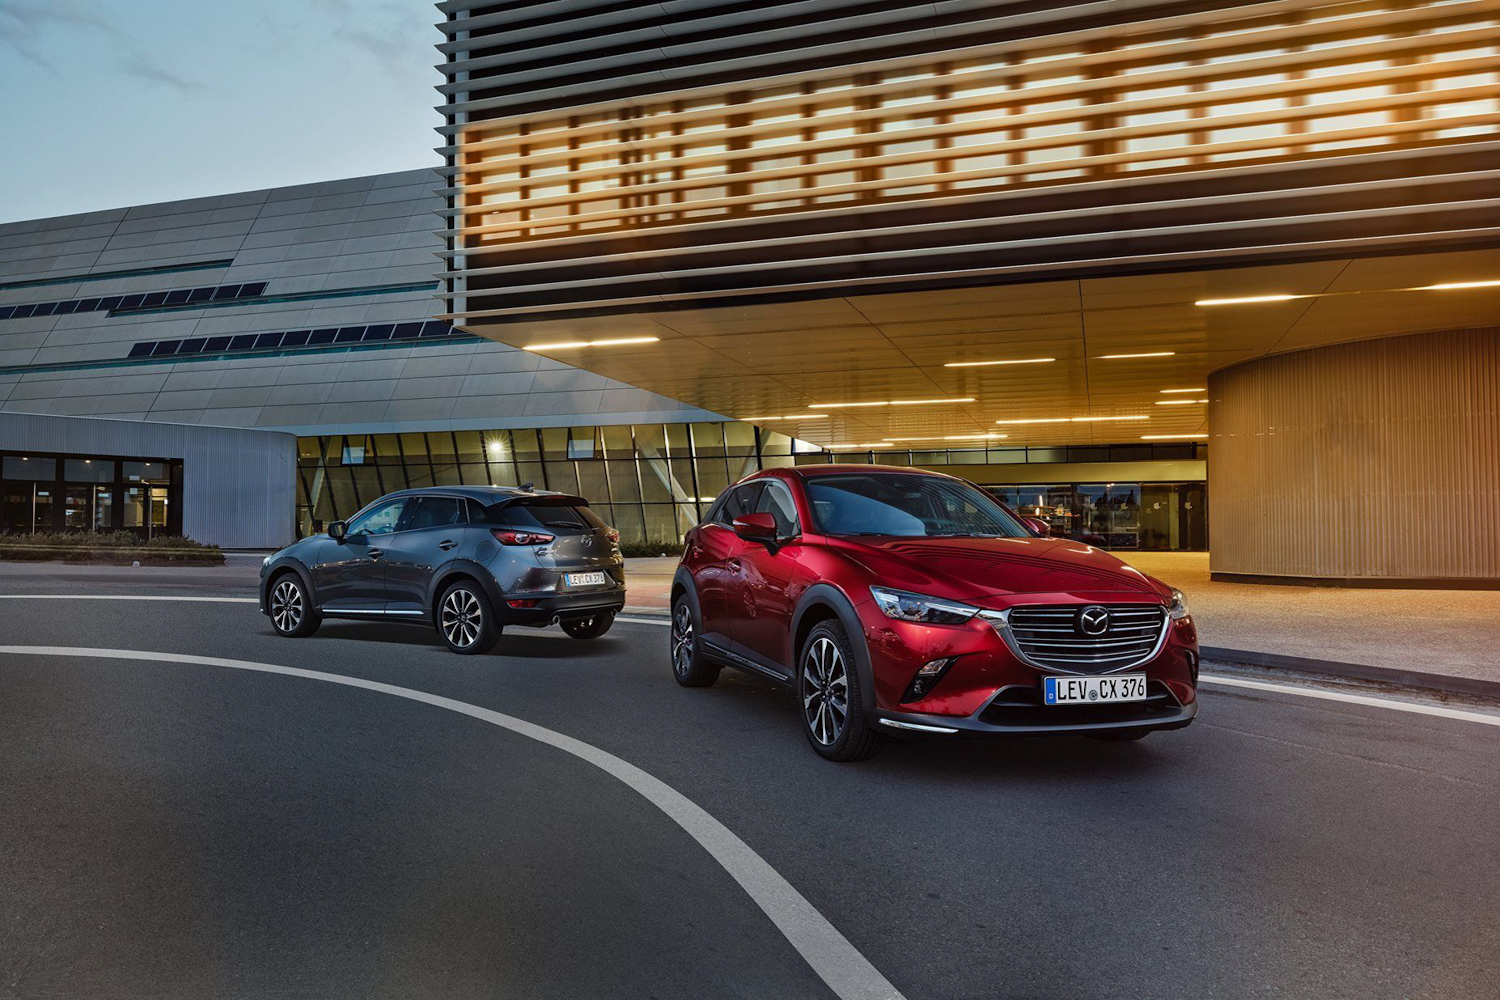 Car News | Mazda CX-3 to get new engine upgrades | CompleteCar.ie